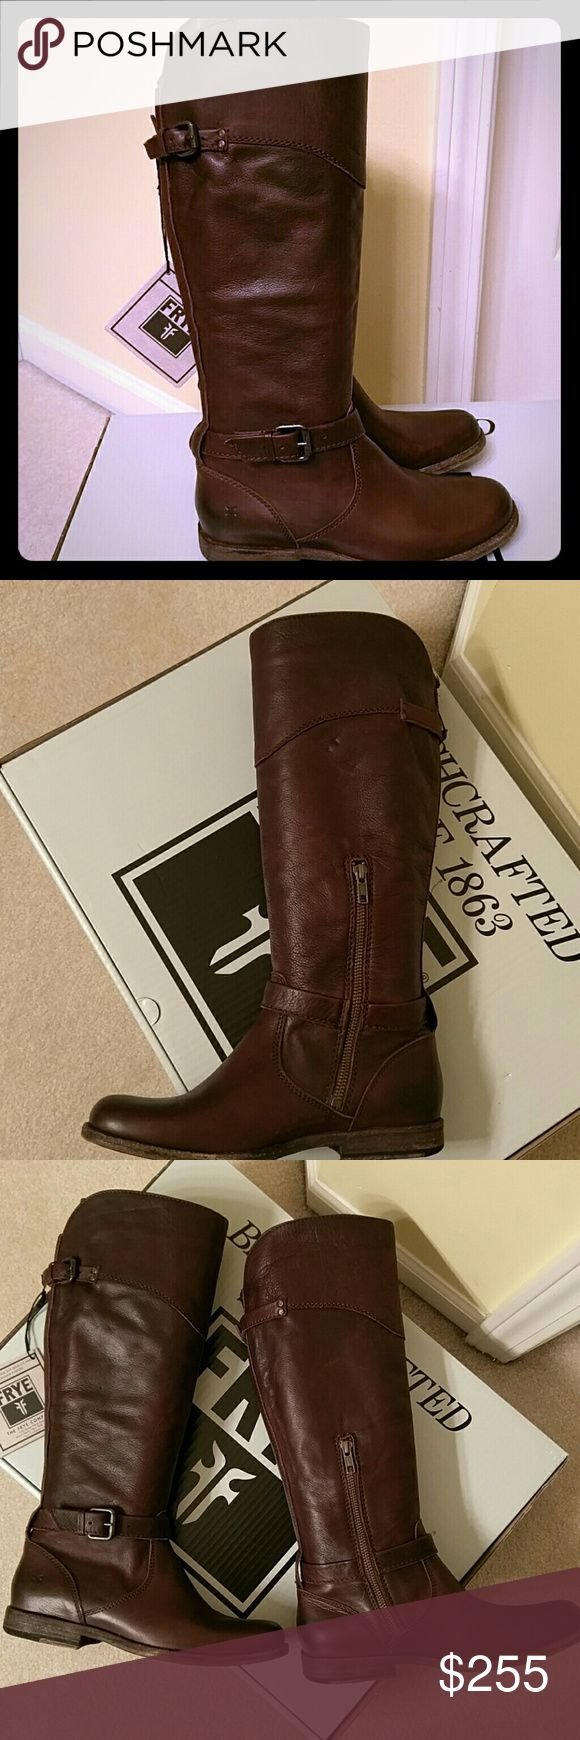 NEW Frye riding boots Chocolate brown leather boots. Excellent quality that only Frye can make. These are brand NEW. Side zipper for ease. Stunning! No trades please!!! Frye Shoes Heeled Boots